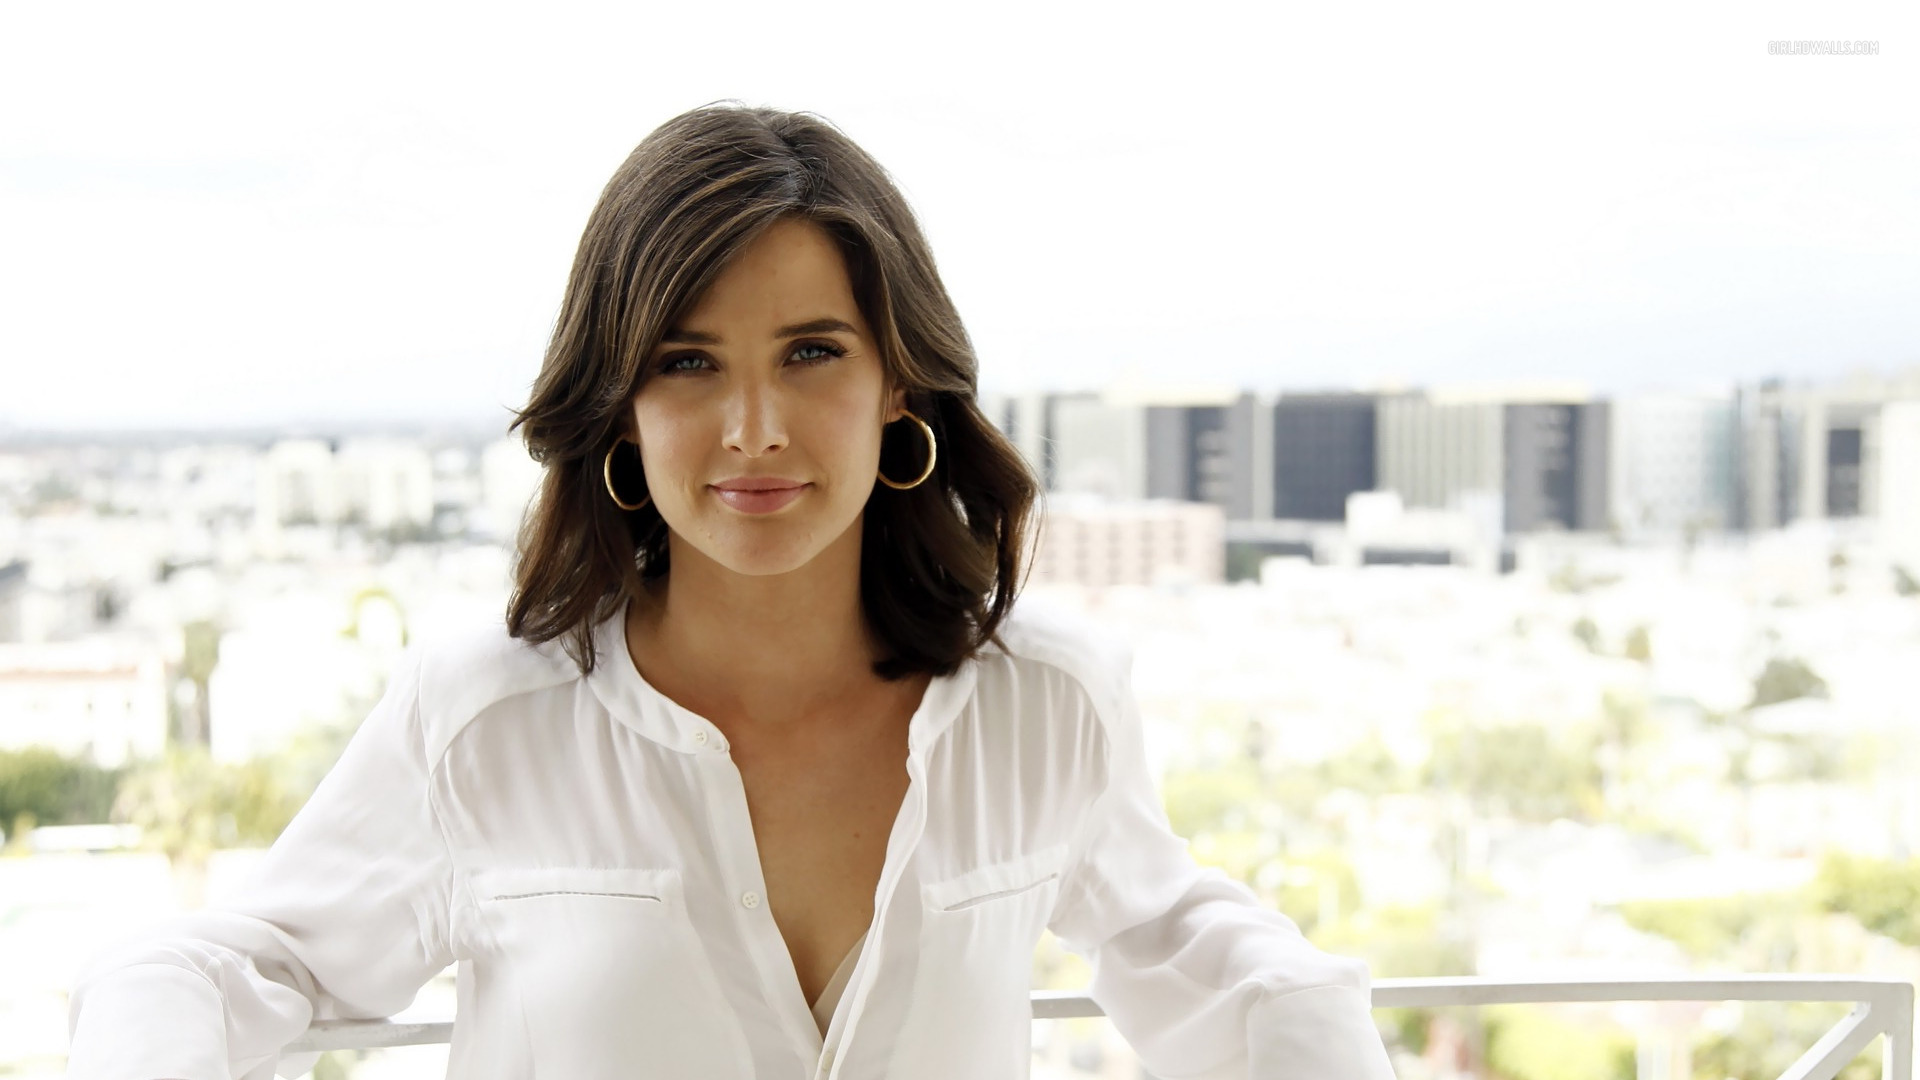 Cobie Smulders HD Wallpaper